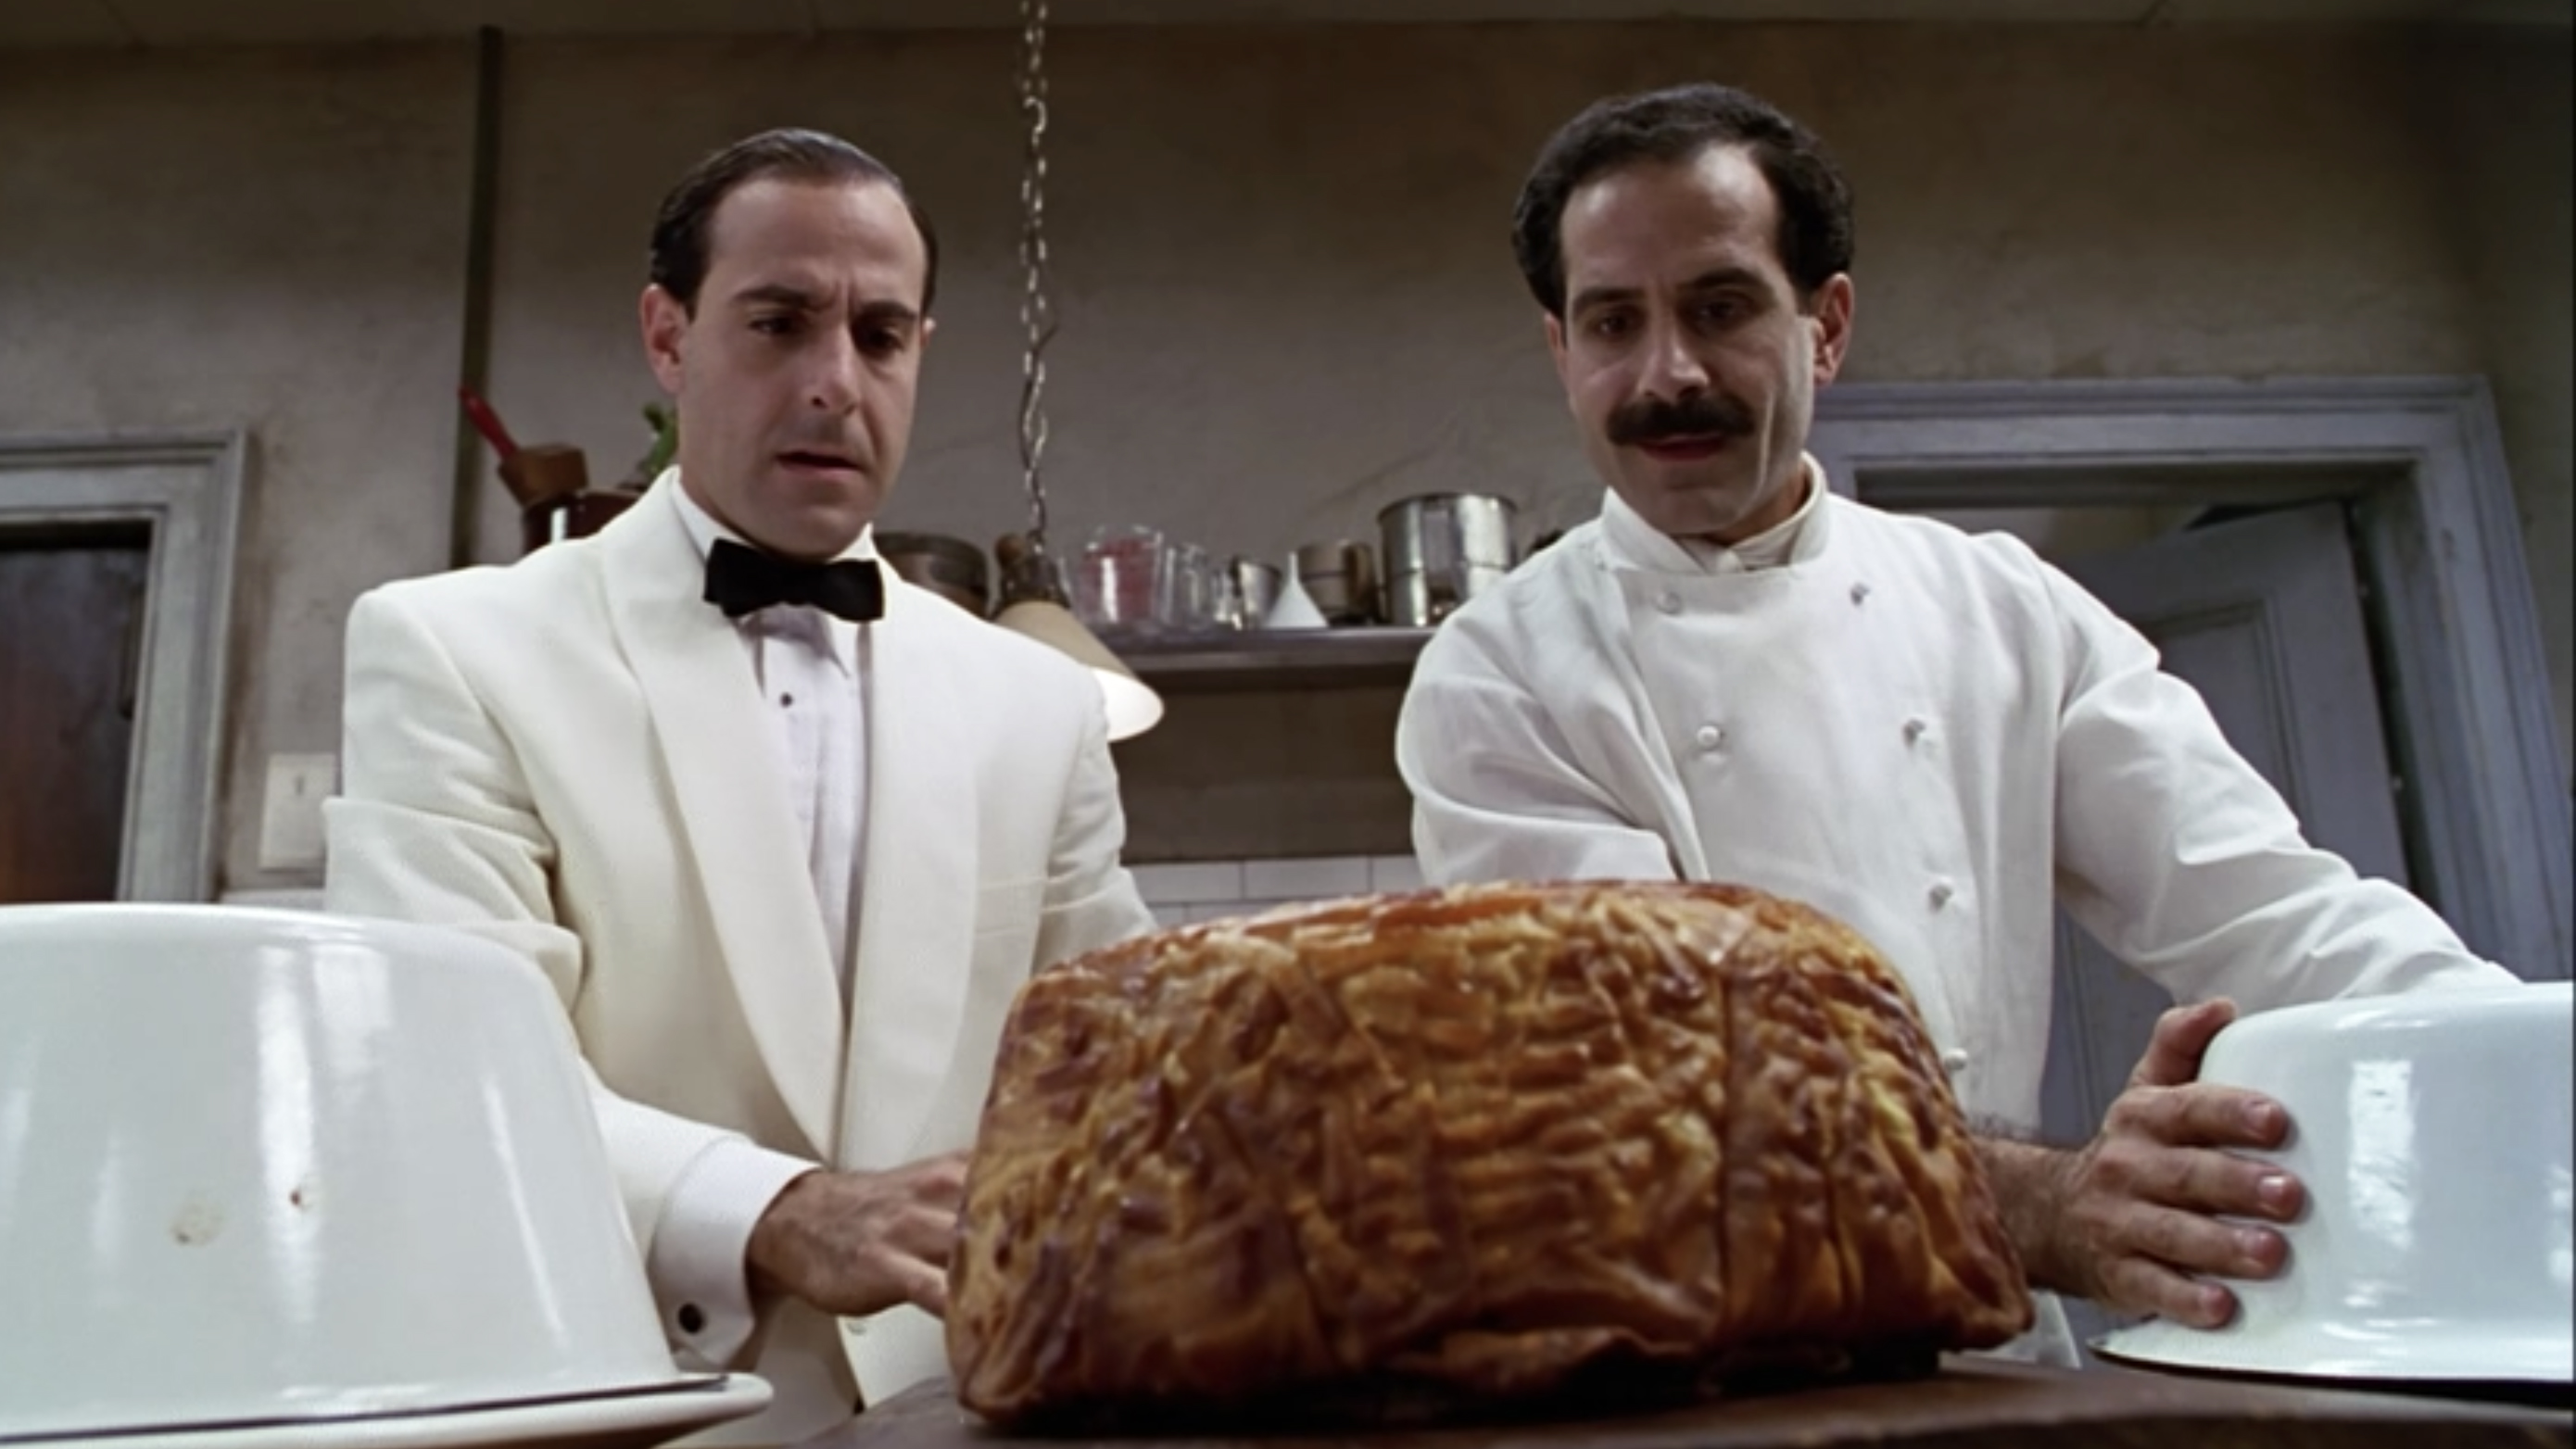 Stanley Tucci and Tony Shalhoub take the Tiimpano, a giant pasta cake, out of its mold.